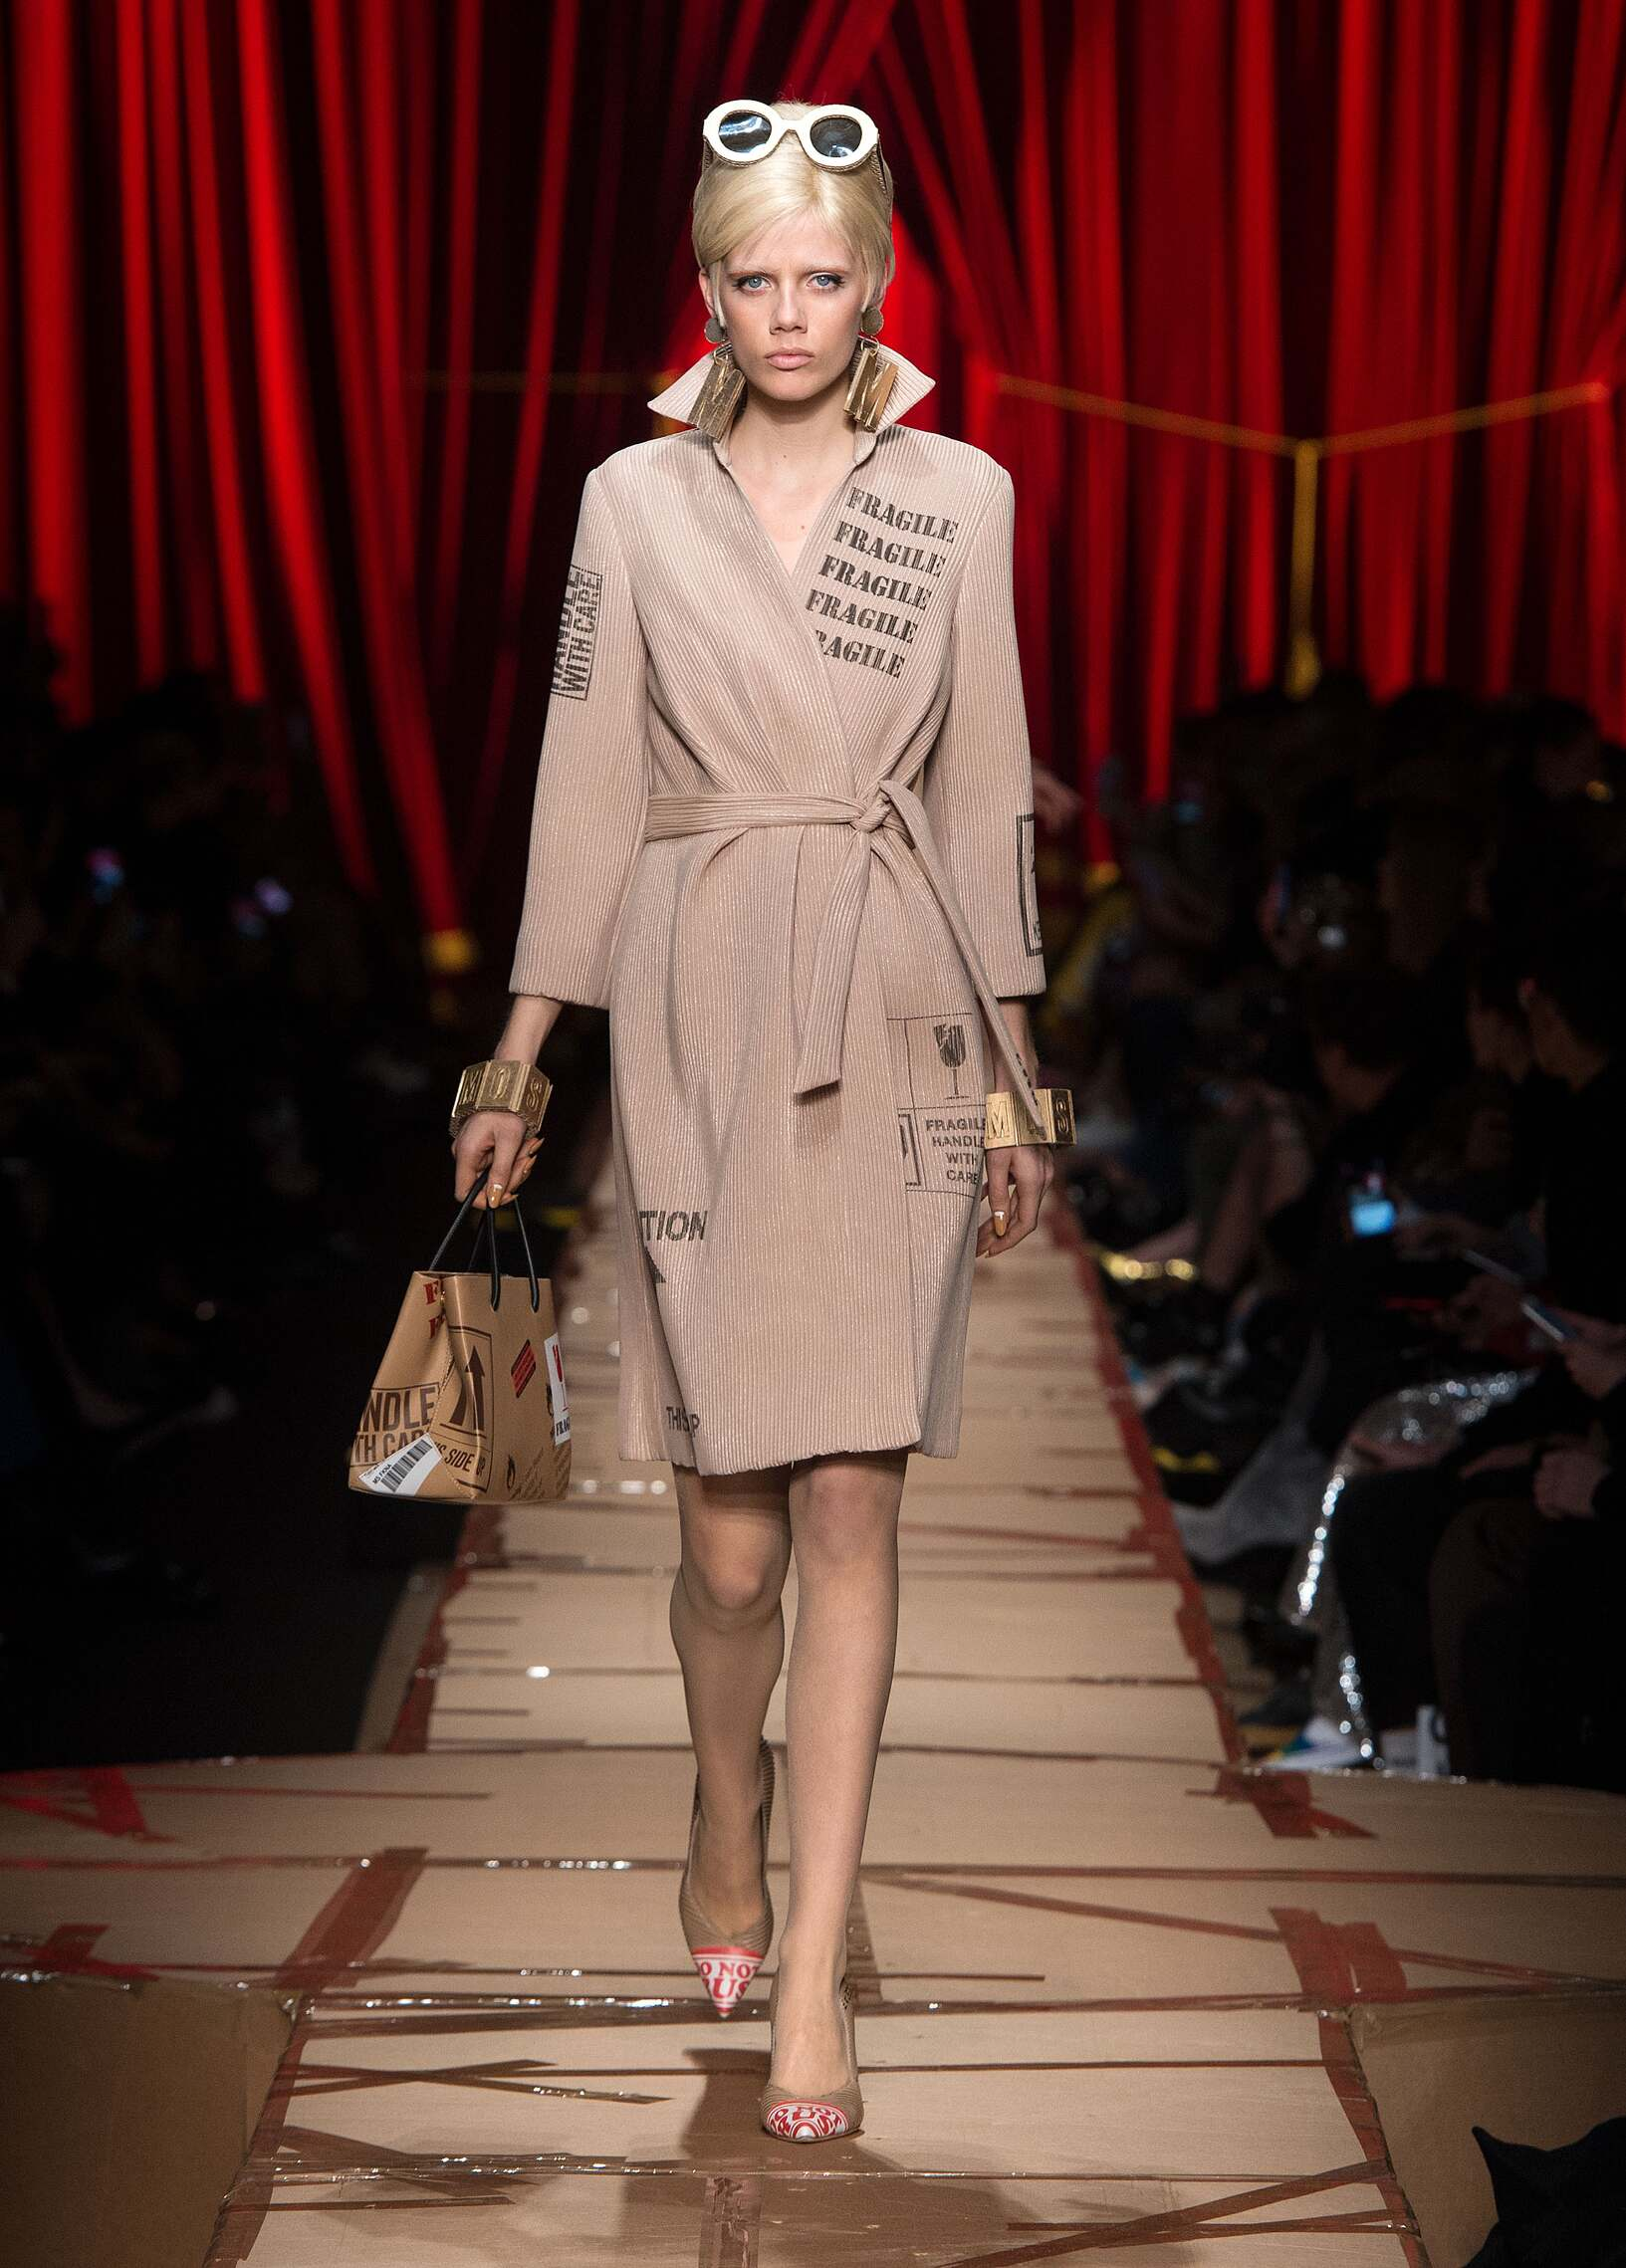 Moschino Woman Catwalk